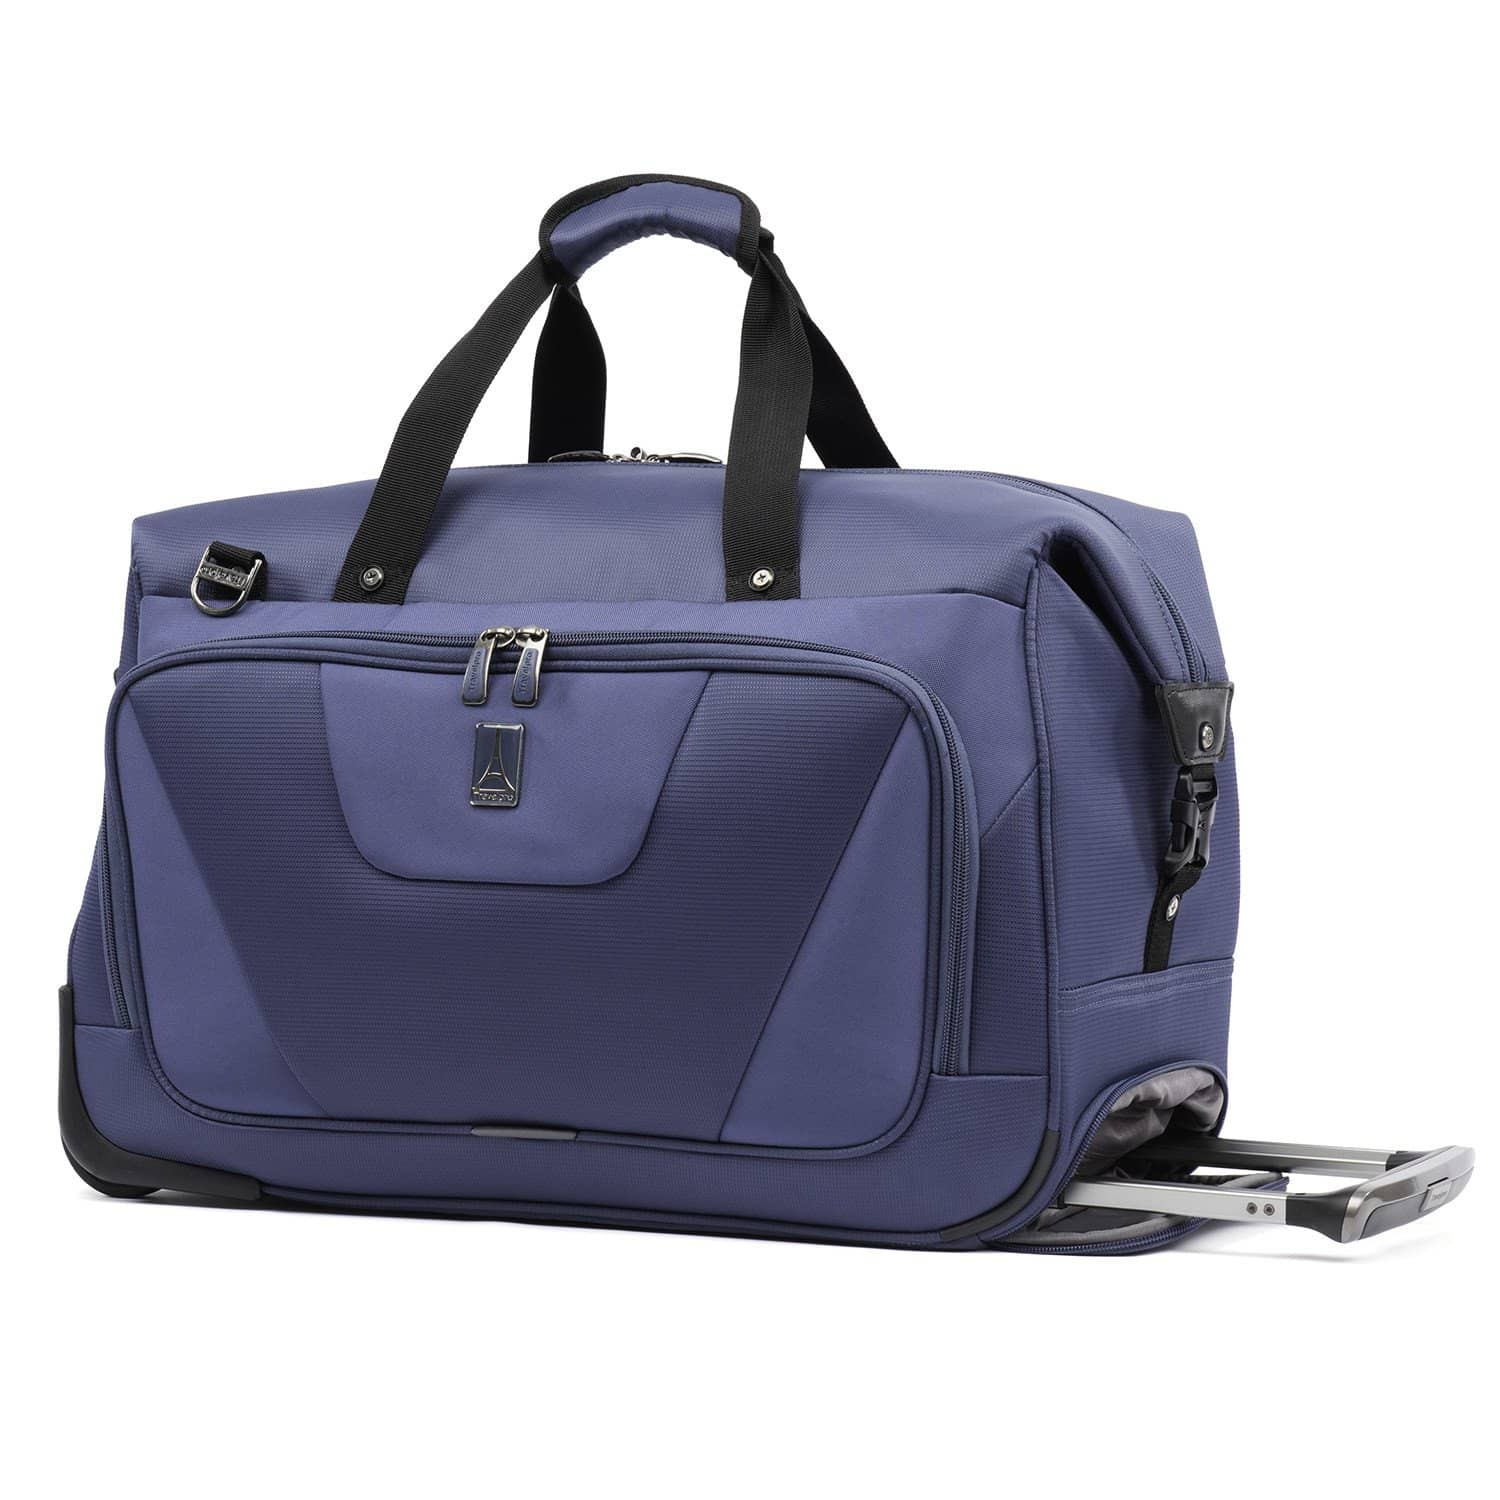 Travelpro Maxlite®4 Carry-on Rolling Duffle BLUE